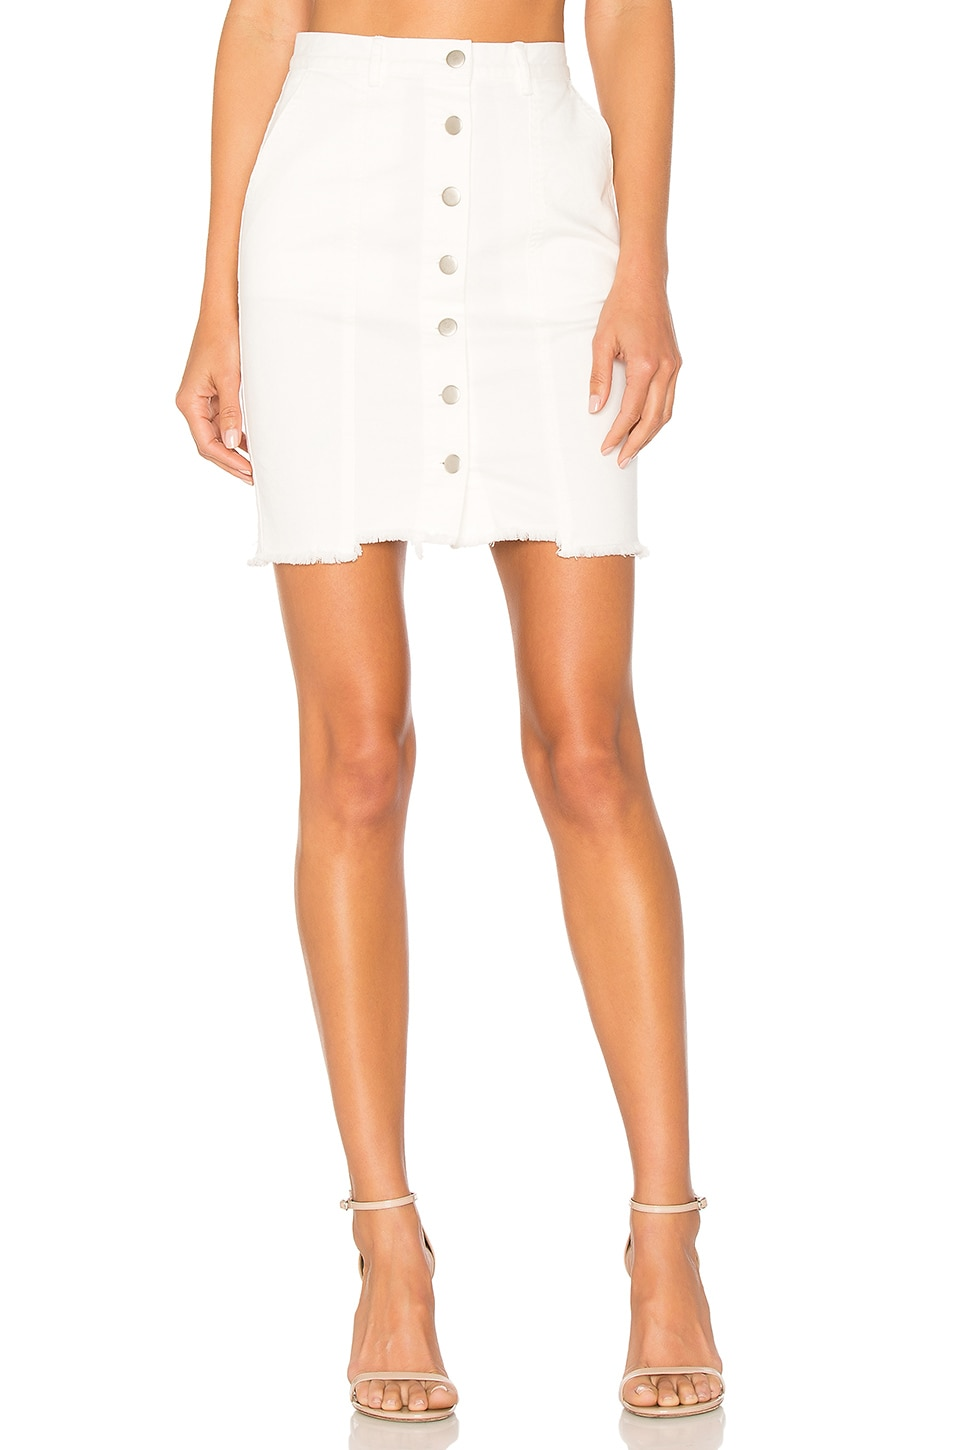 J.O.A. Slim Fit Button Down Denim Skirt in White